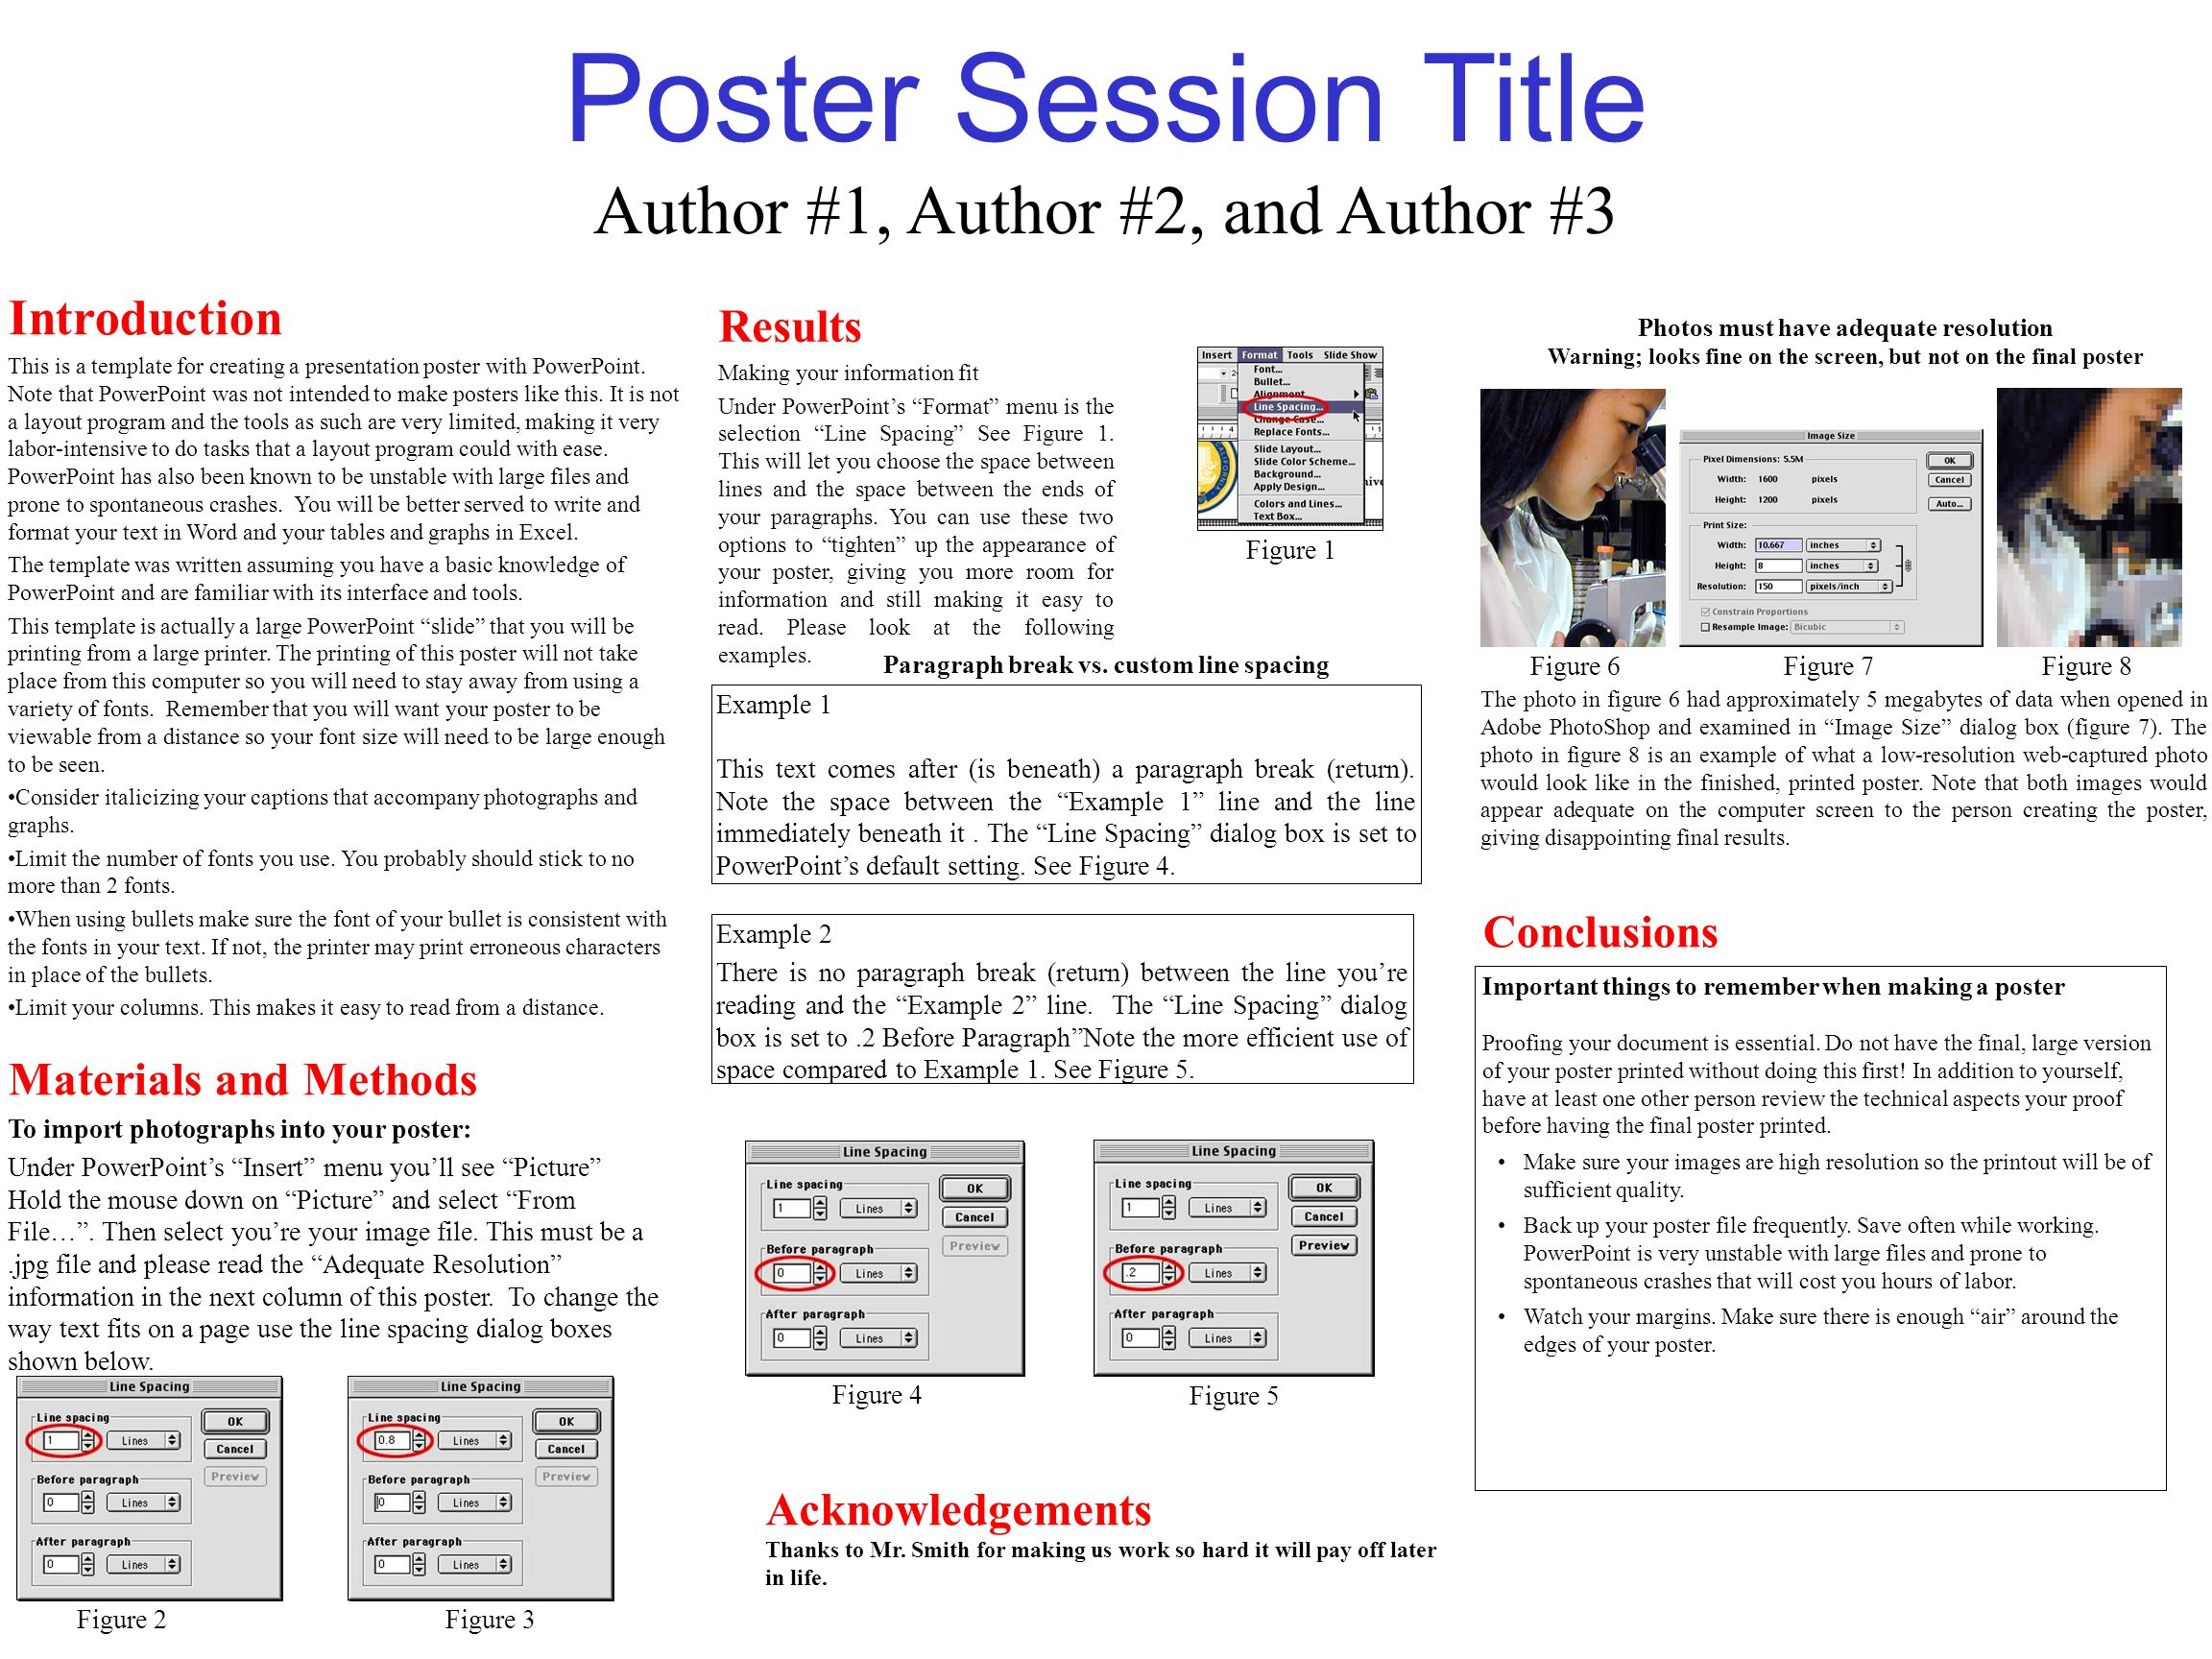 poster session title introduction this